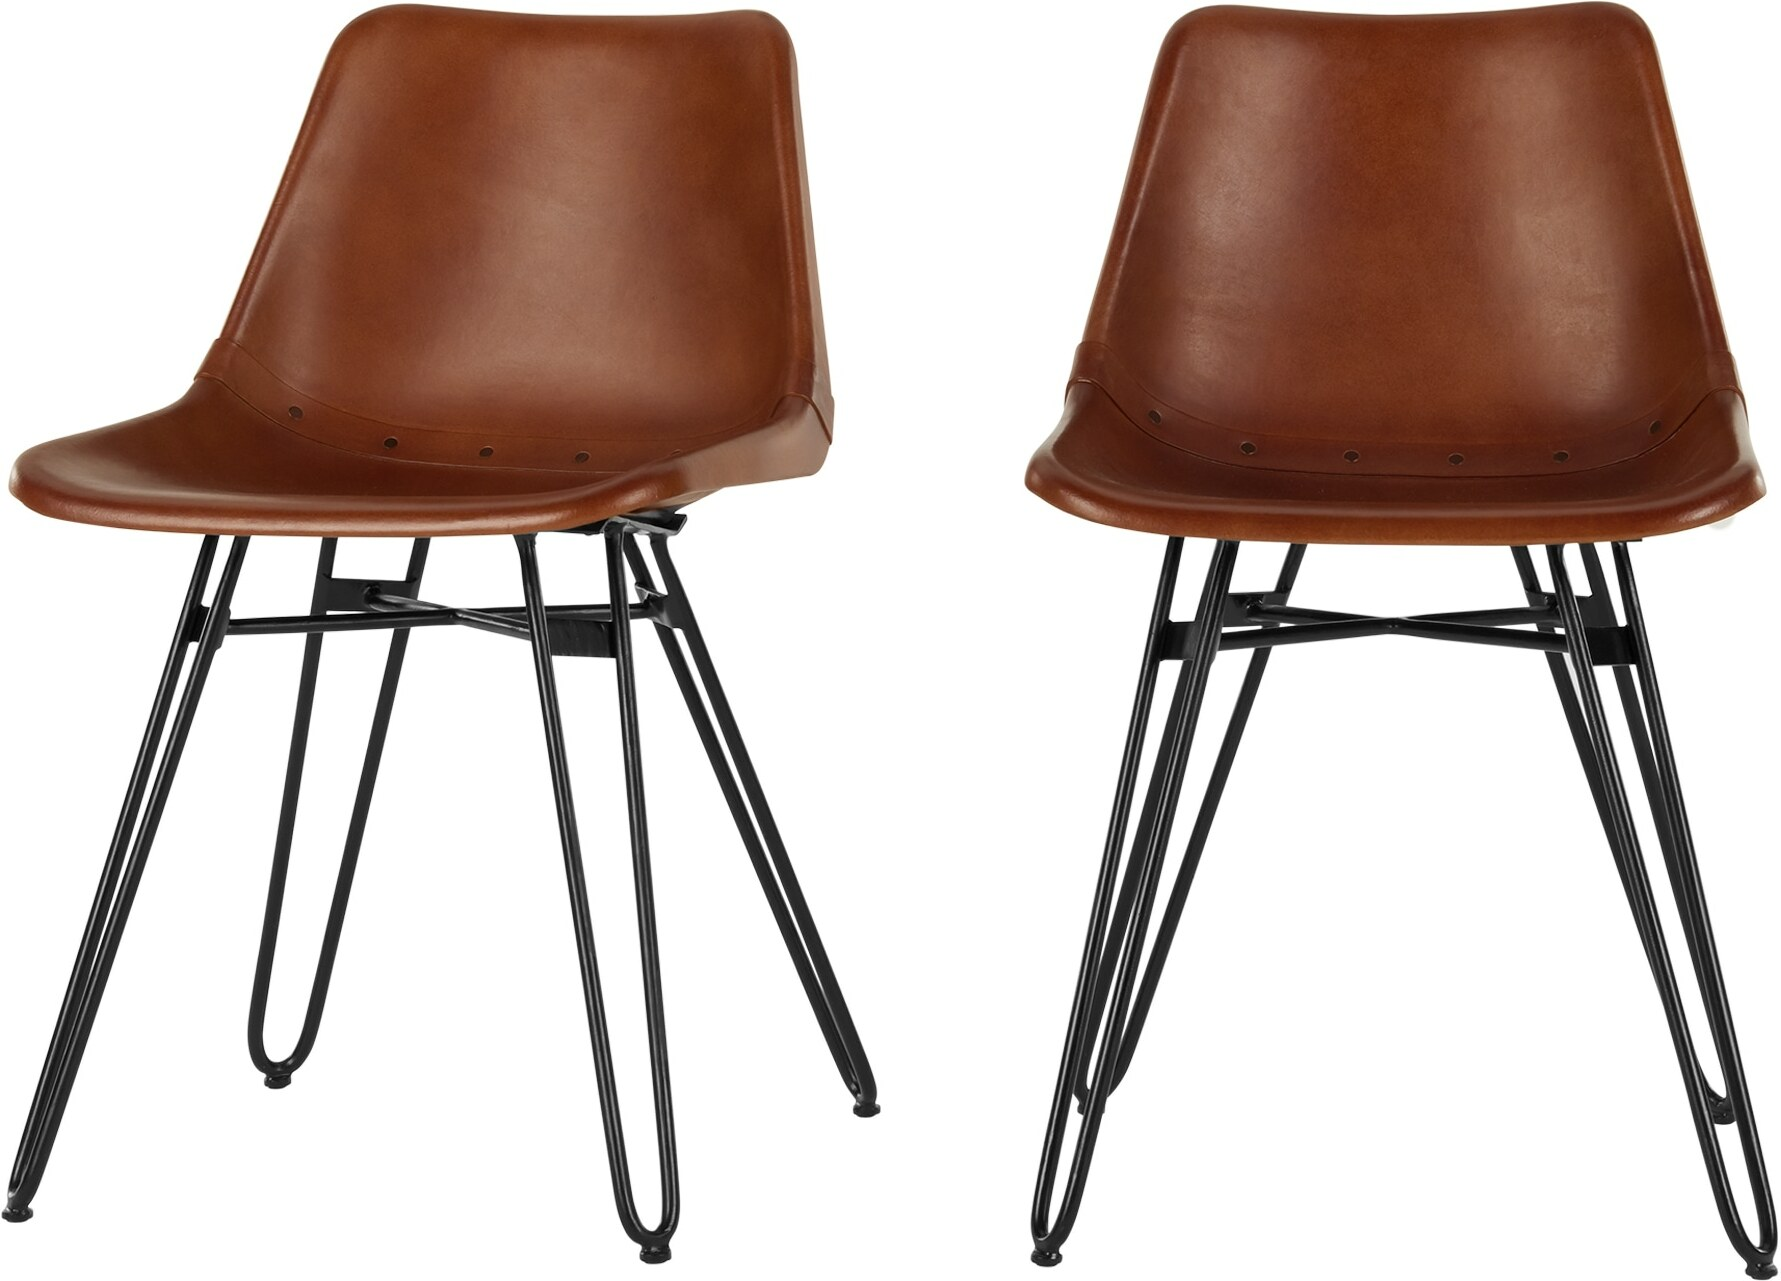 Image of 2 x Kendal Dining Chair, Tan and Black